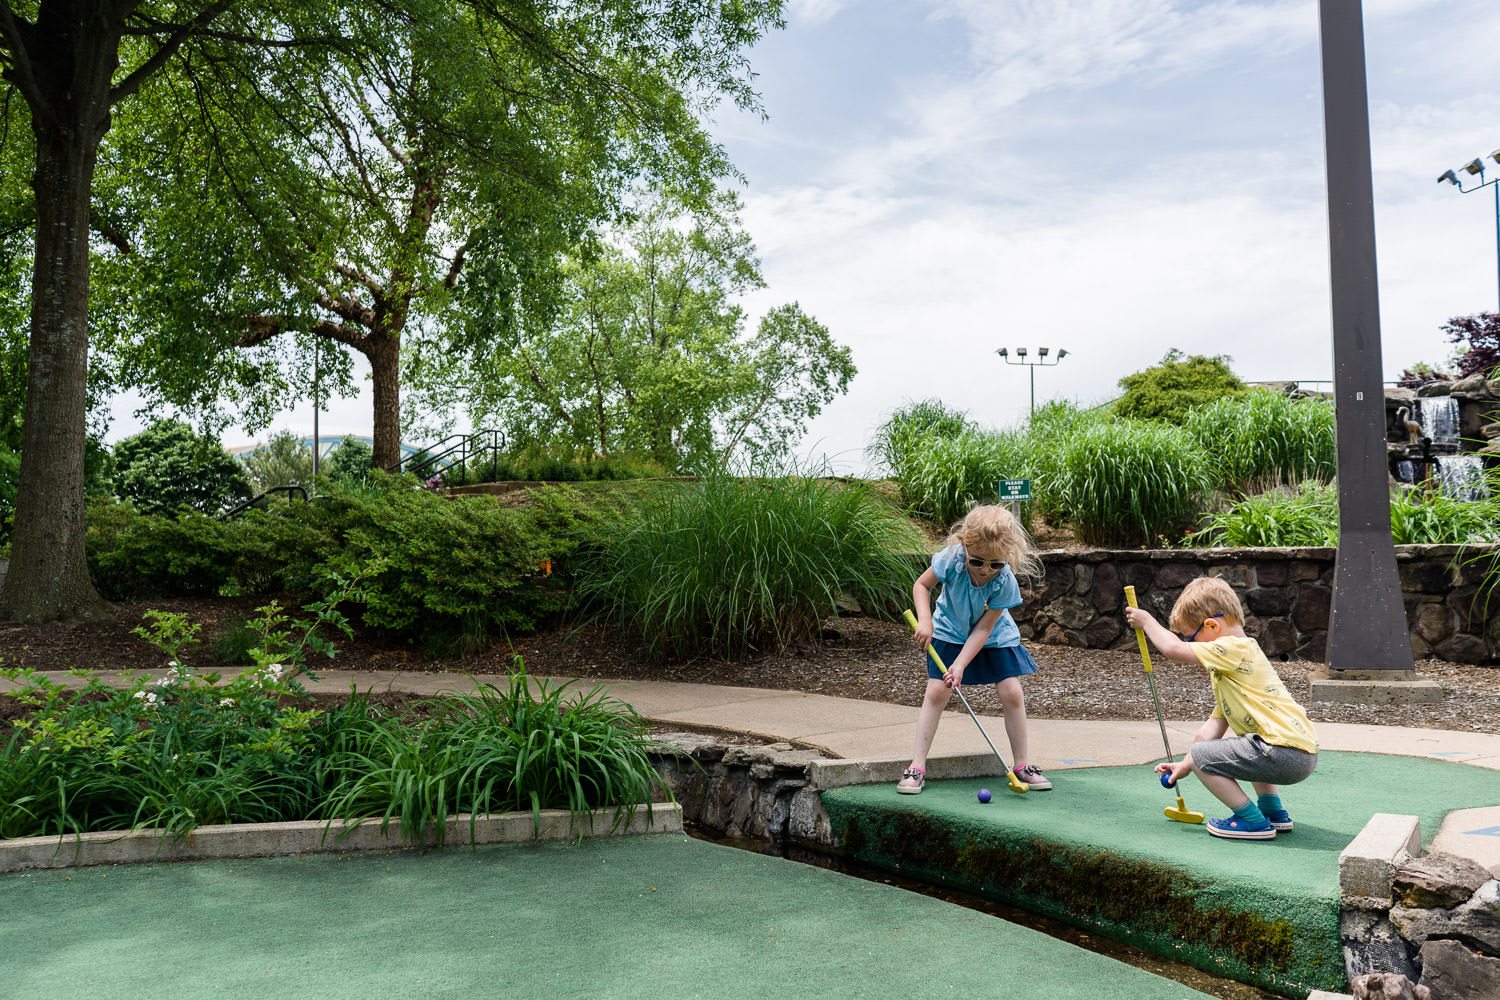 Two children play mini golf.